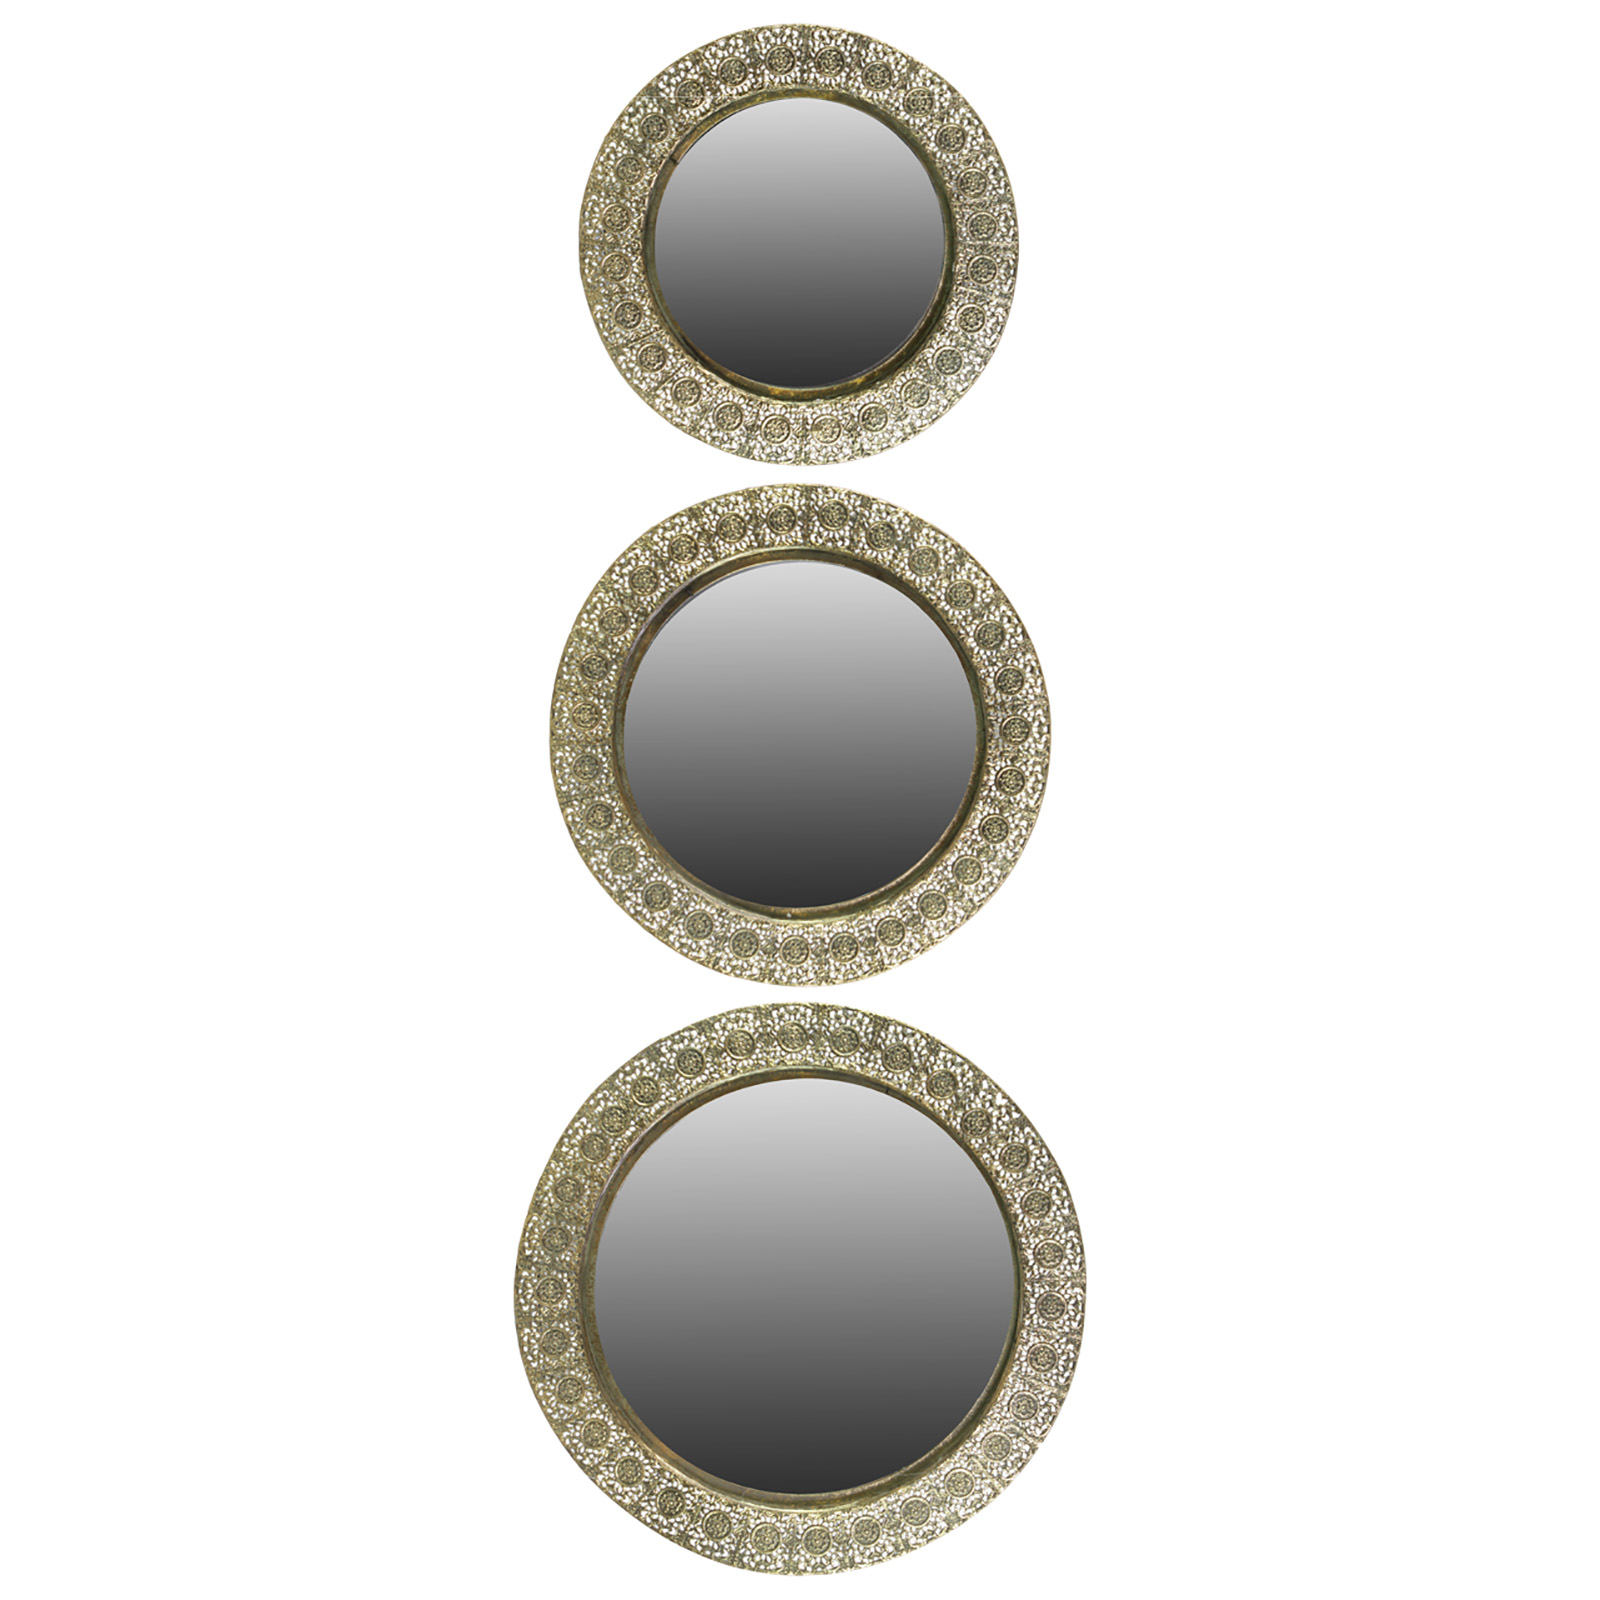 benzara metal round wall mirror set of 3 mirrors at hayneedle. Black Bedroom Furniture Sets. Home Design Ideas